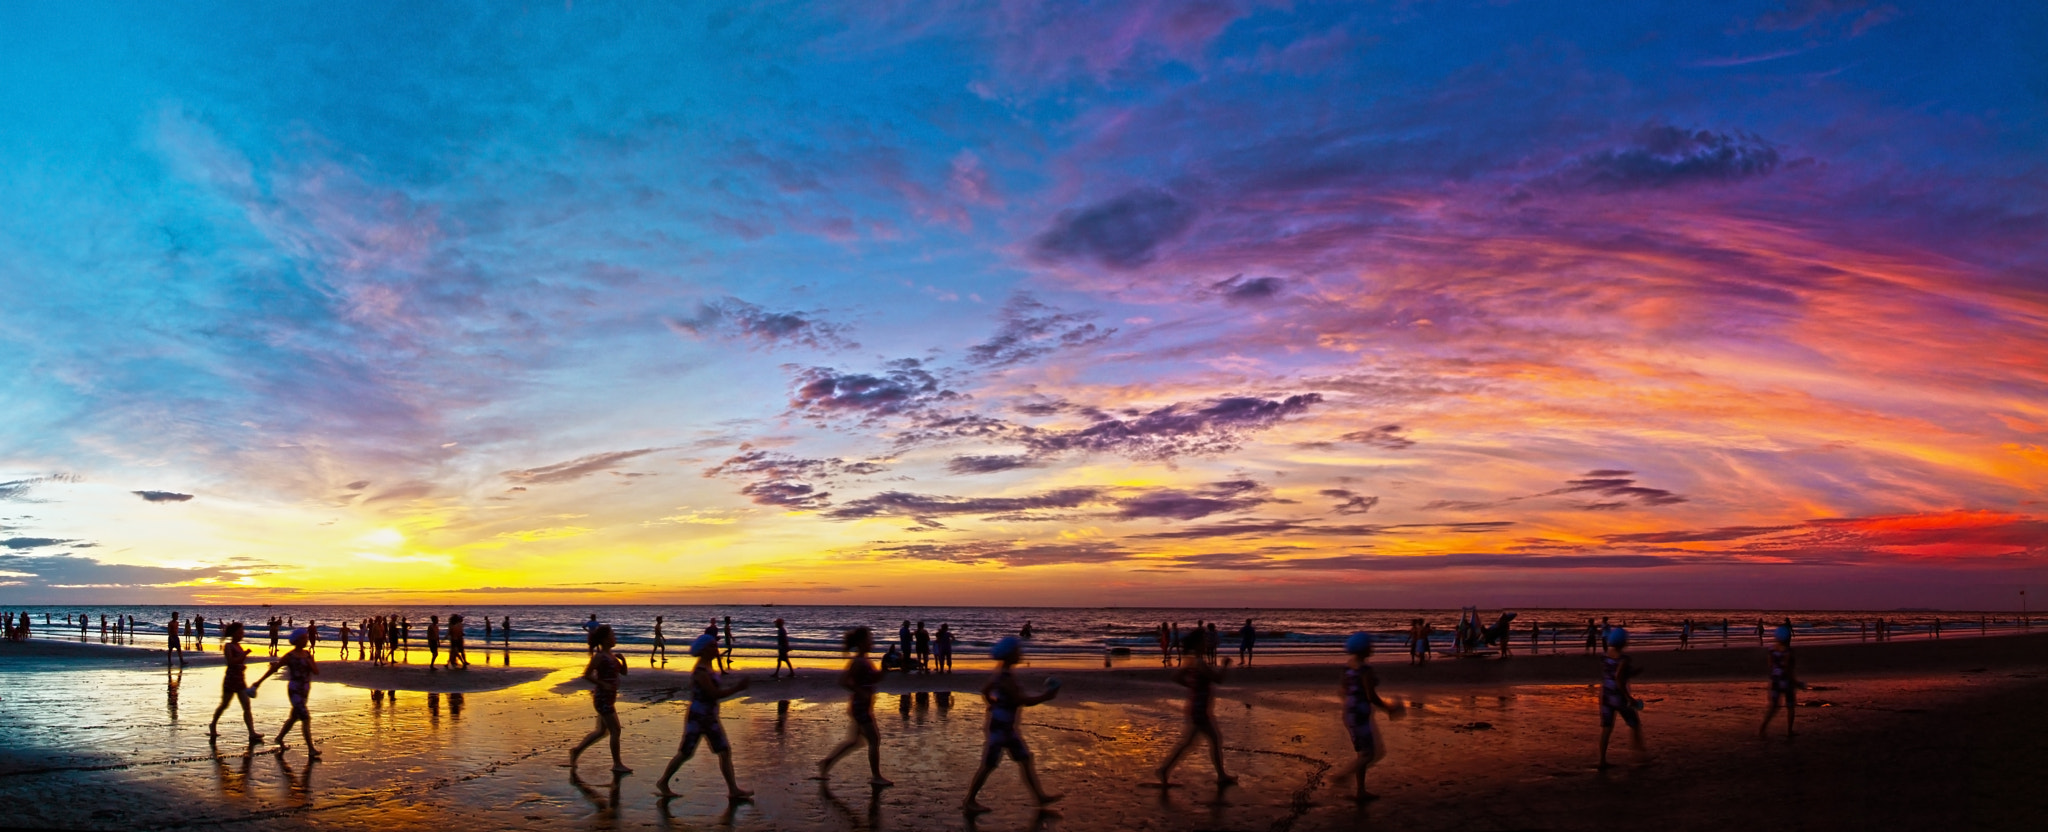 Photograph At Sam Son beach by Amateur Pic on 500px